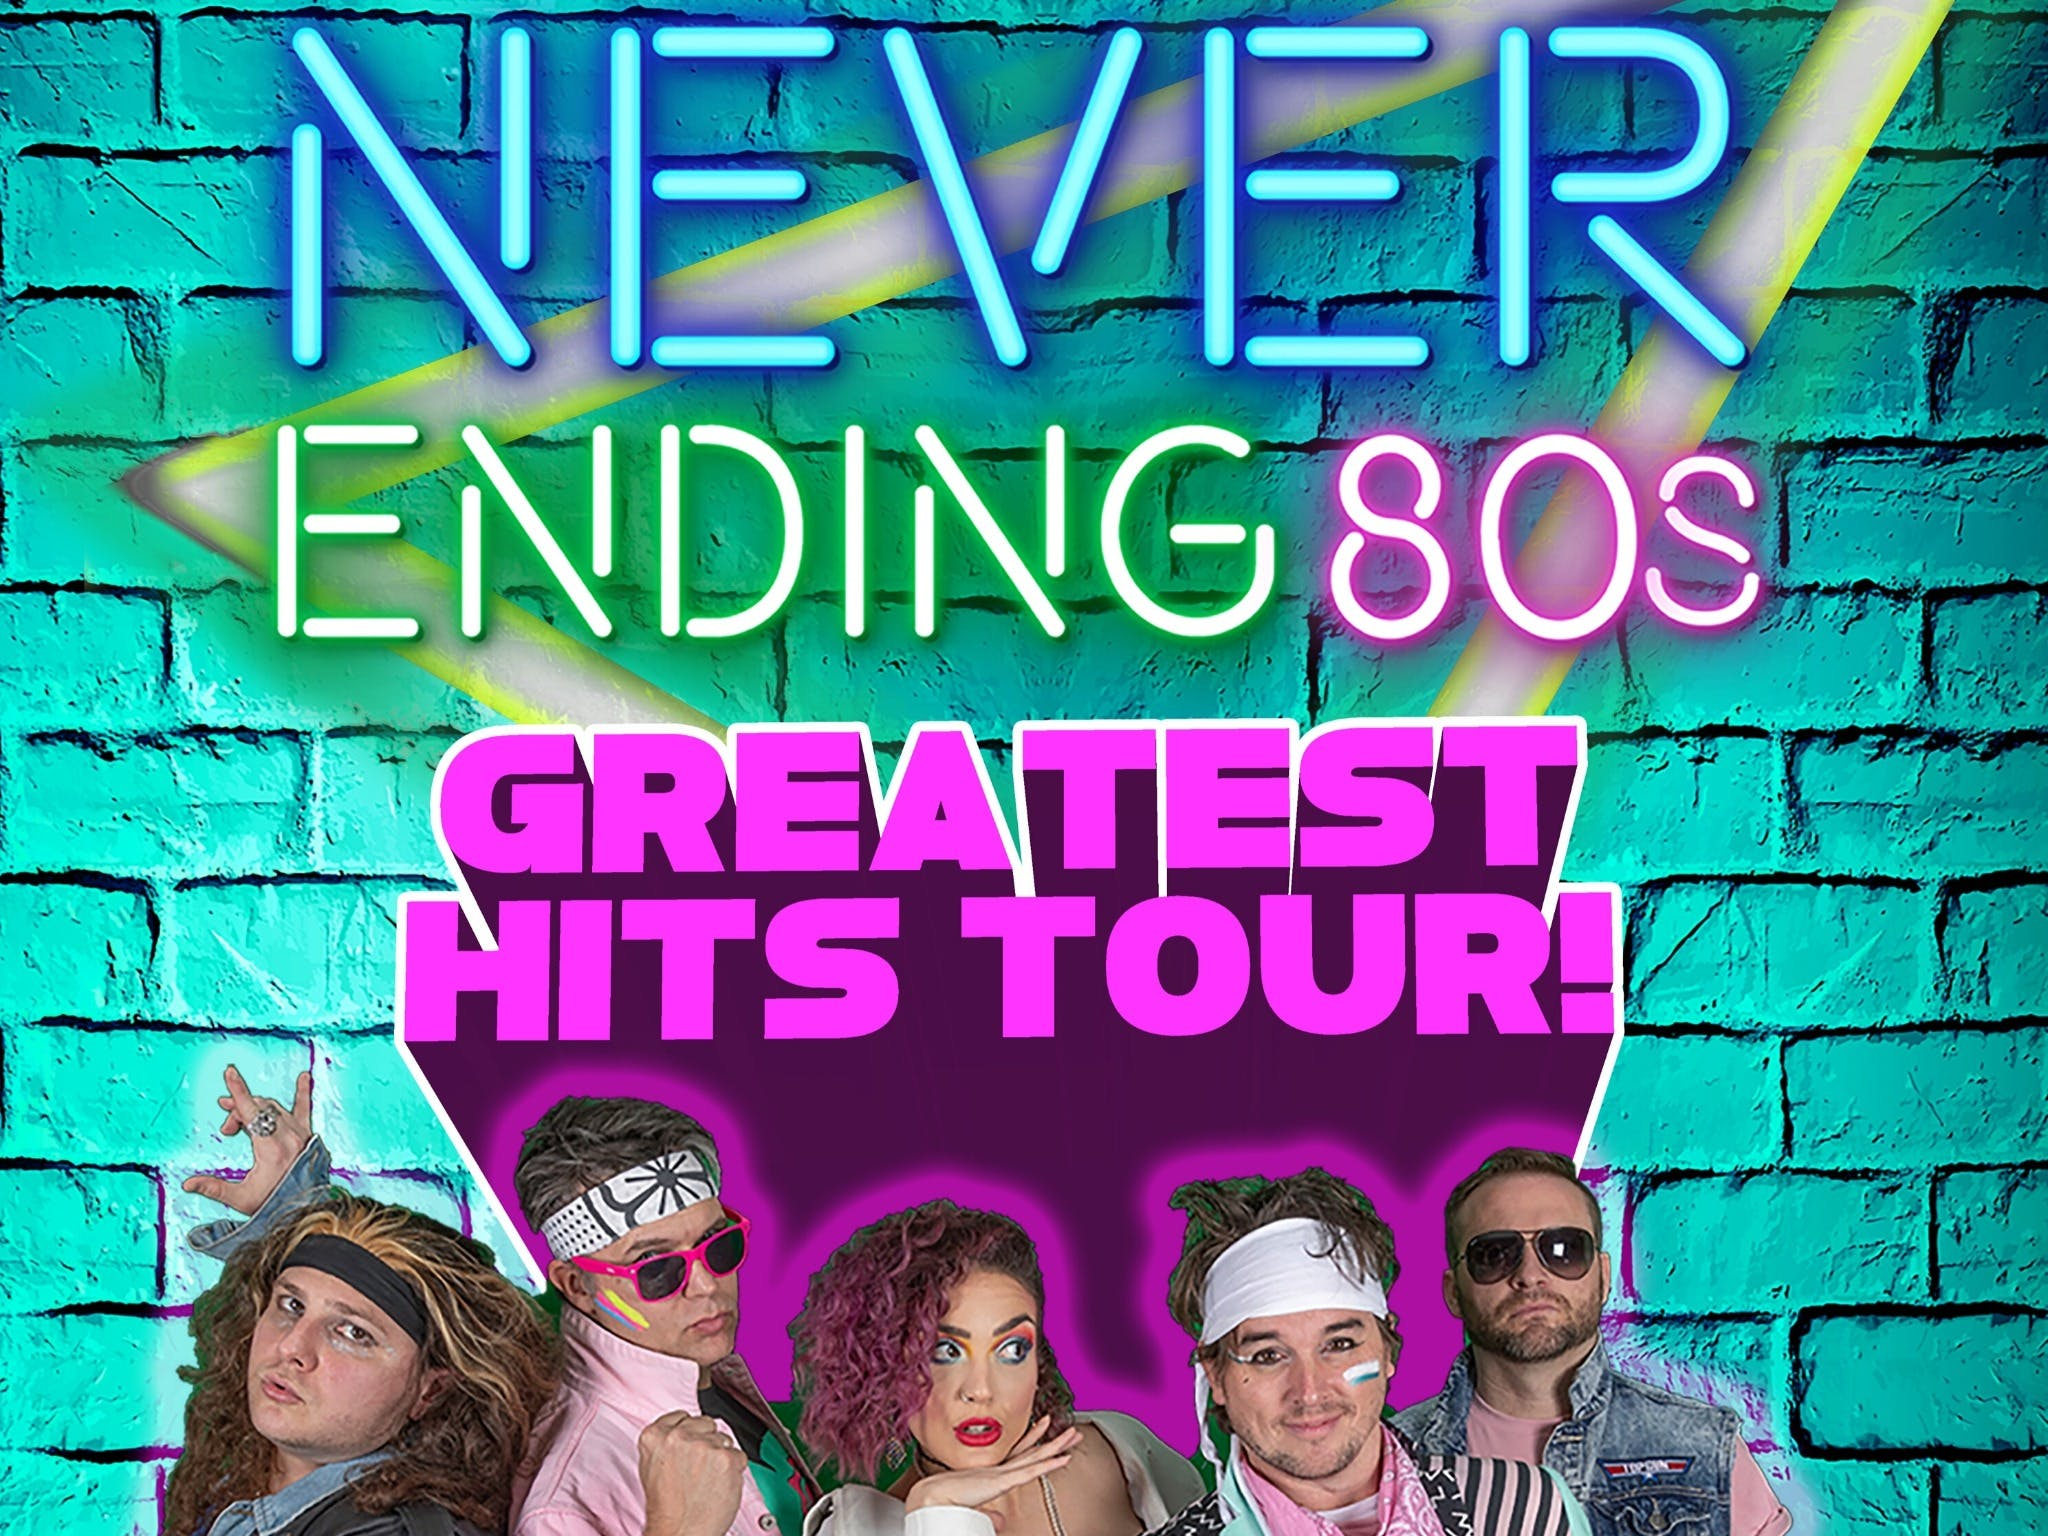 Never Ending 80s - The Greatest Hits Tour - QLD Tourism